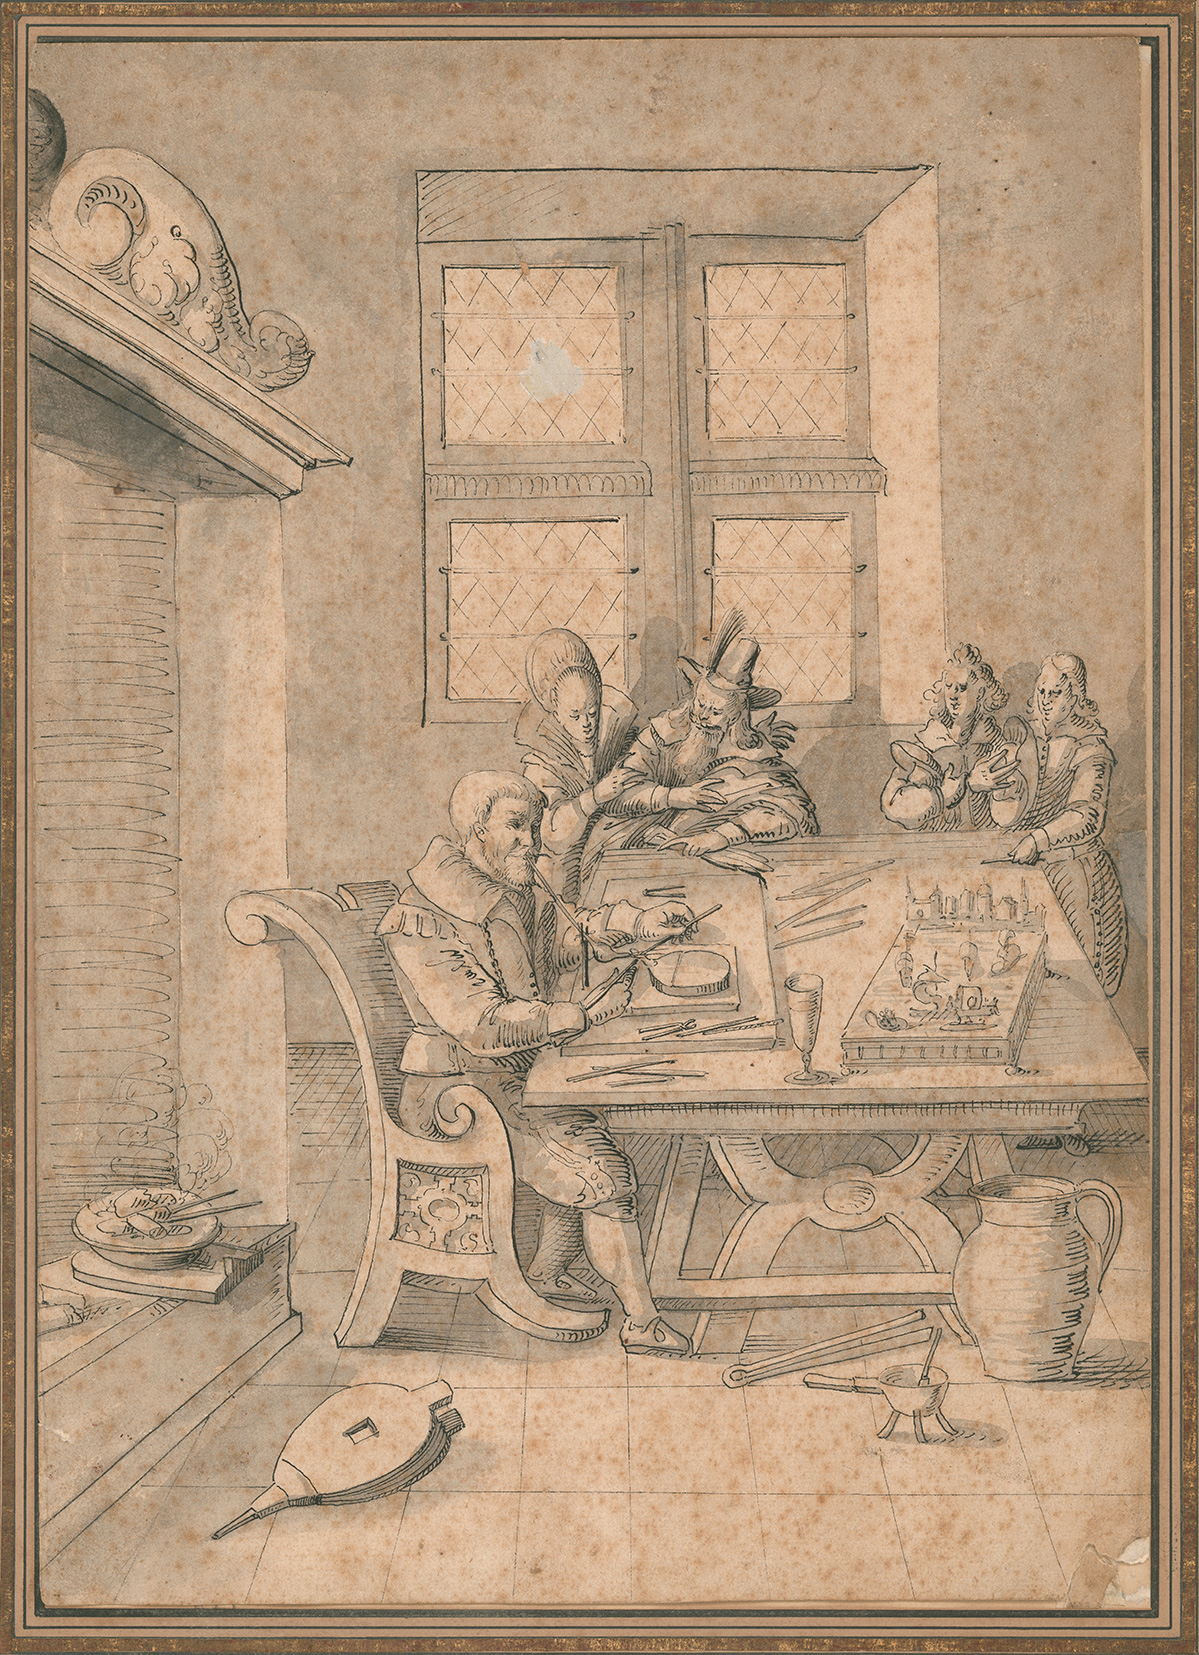 Engraving showing a man (belived to be Duke Ferdinand) flameworking as four others watch